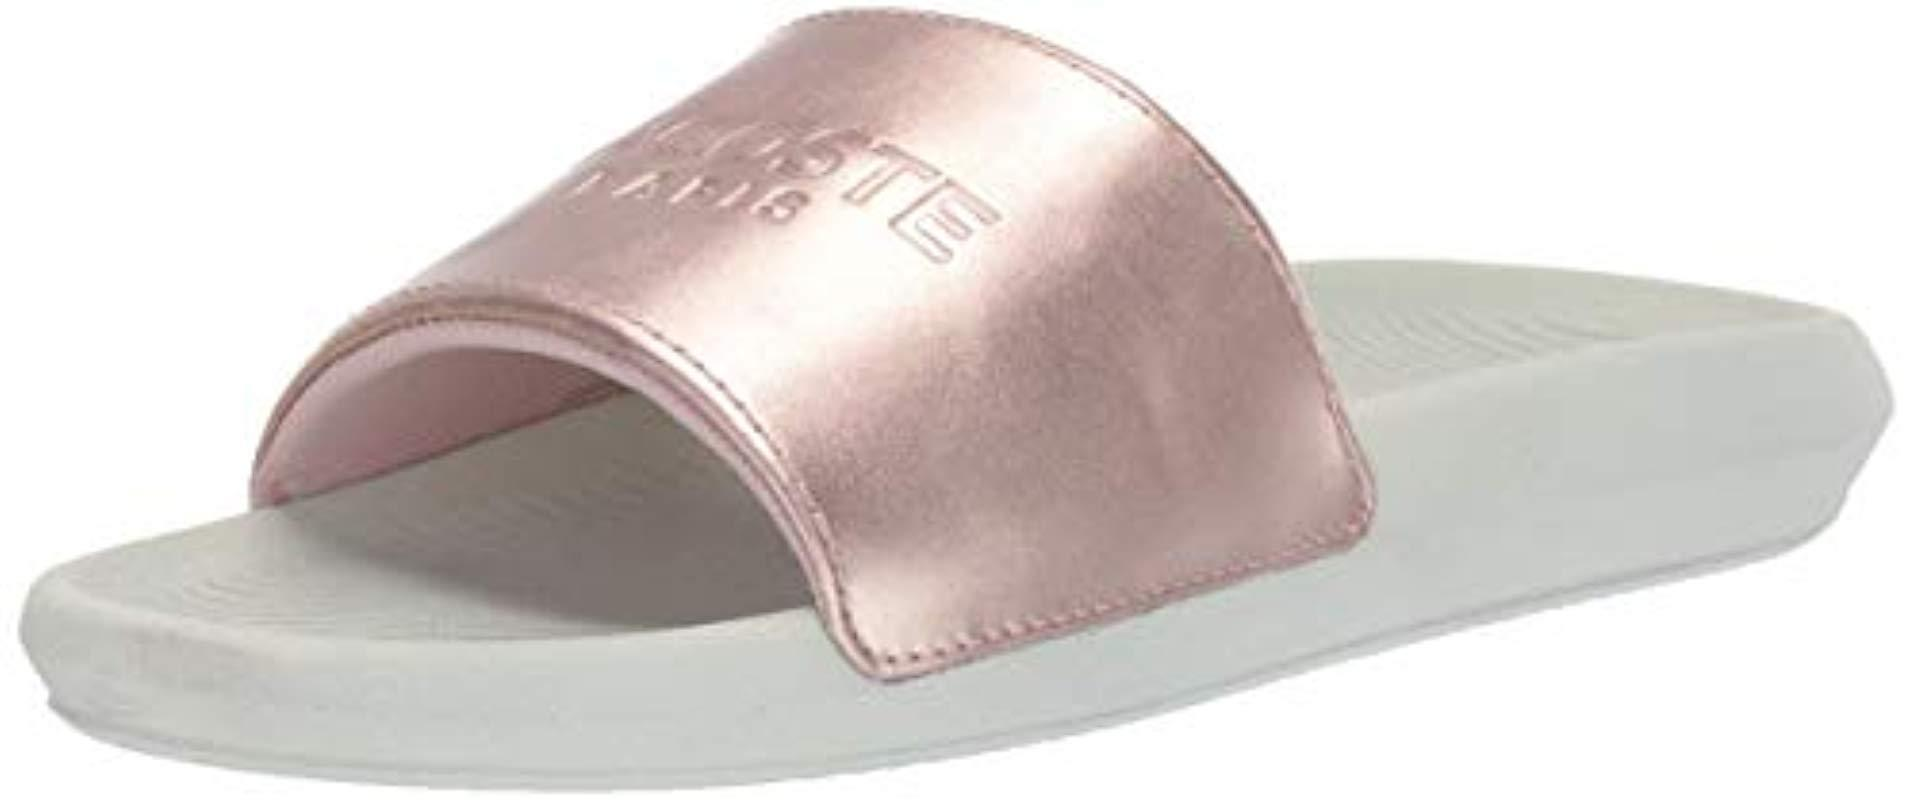 e4640353b Lyst - Lacoste Croco Slide Sandal Pink off White 7 Medium Us in Pink